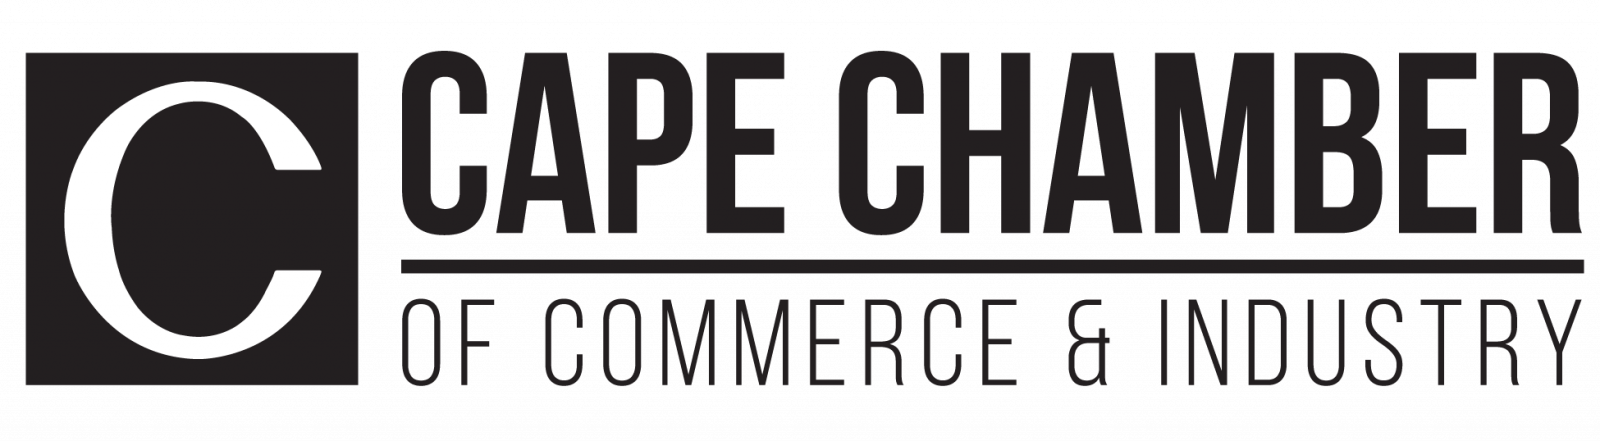 We are a Member of Cape Chamber of Commerce and Industry